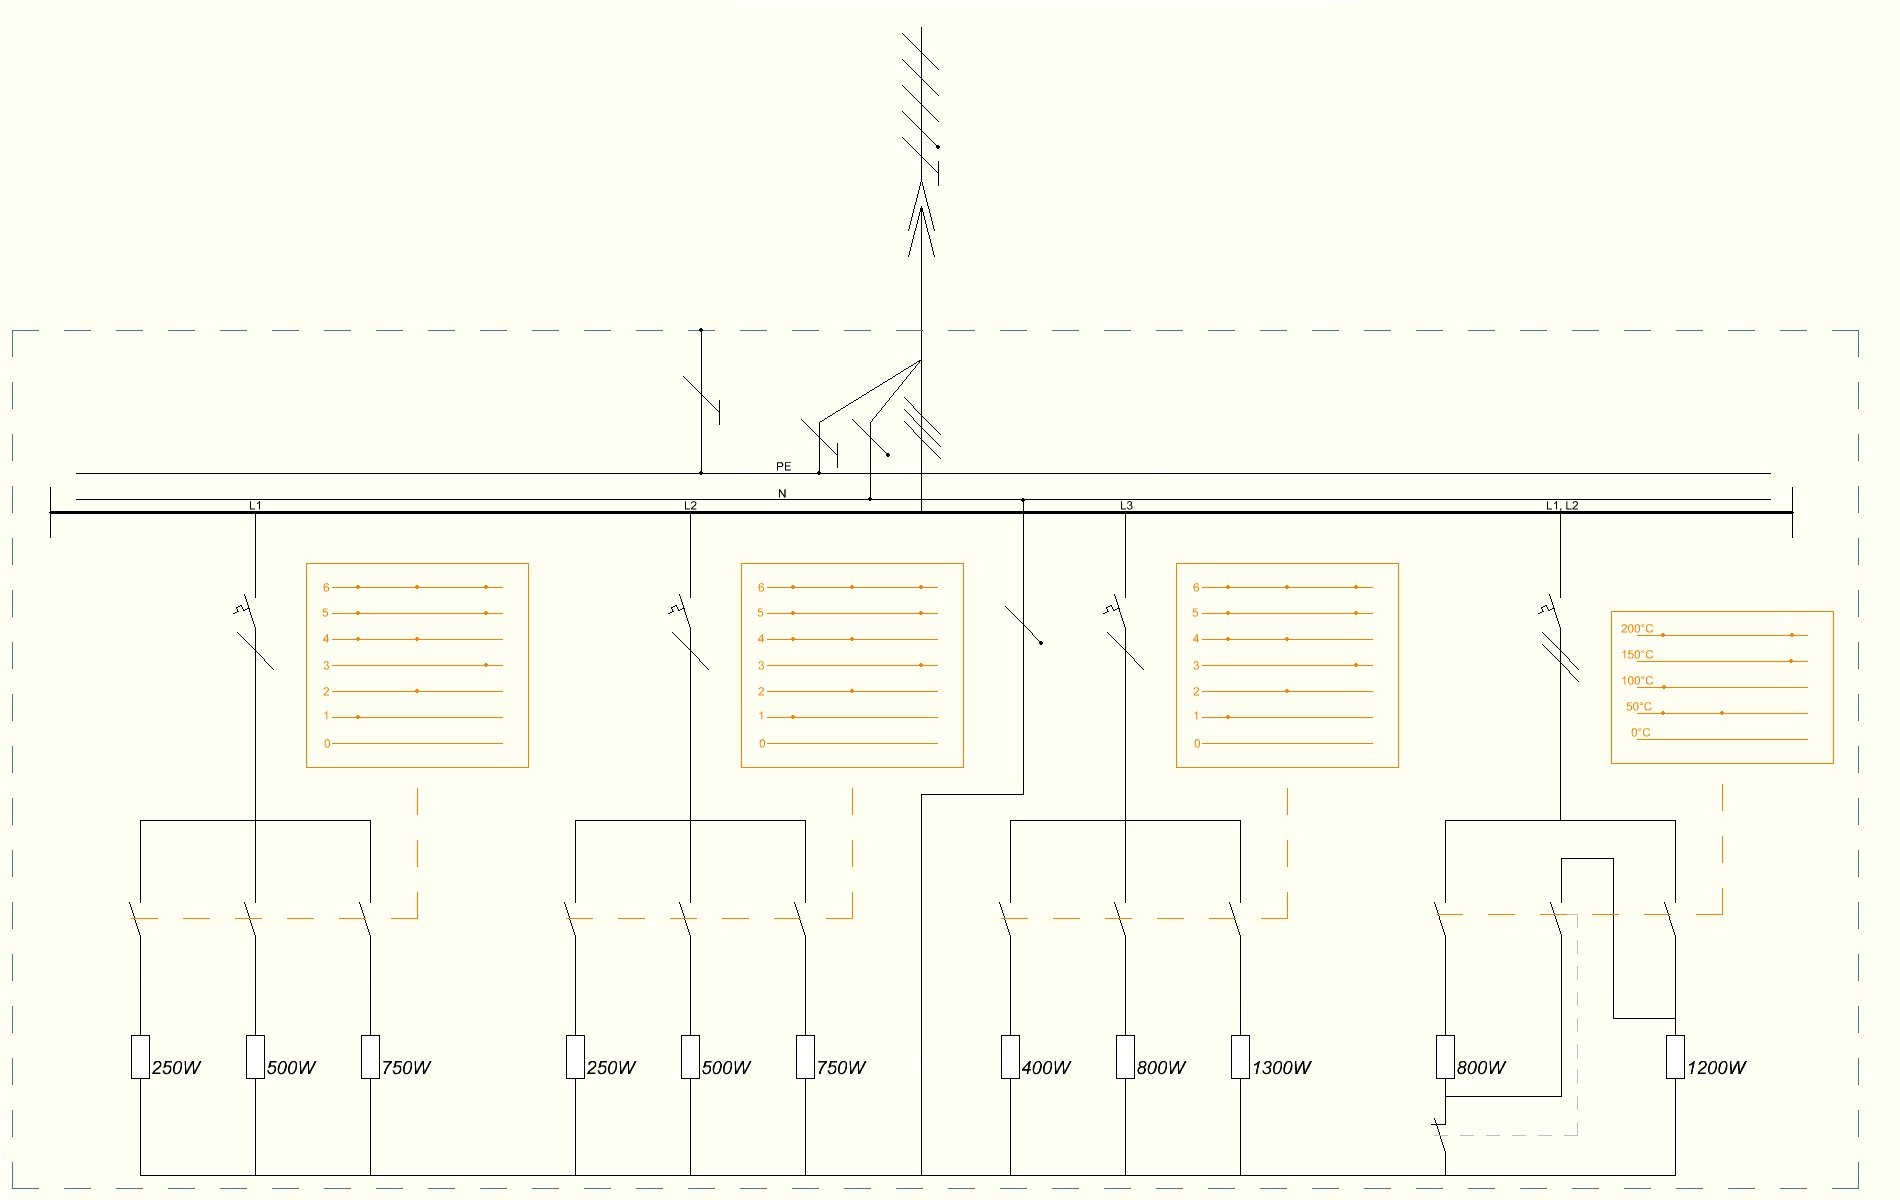 File:Schematic wiring diagram of electrical stove.JPG